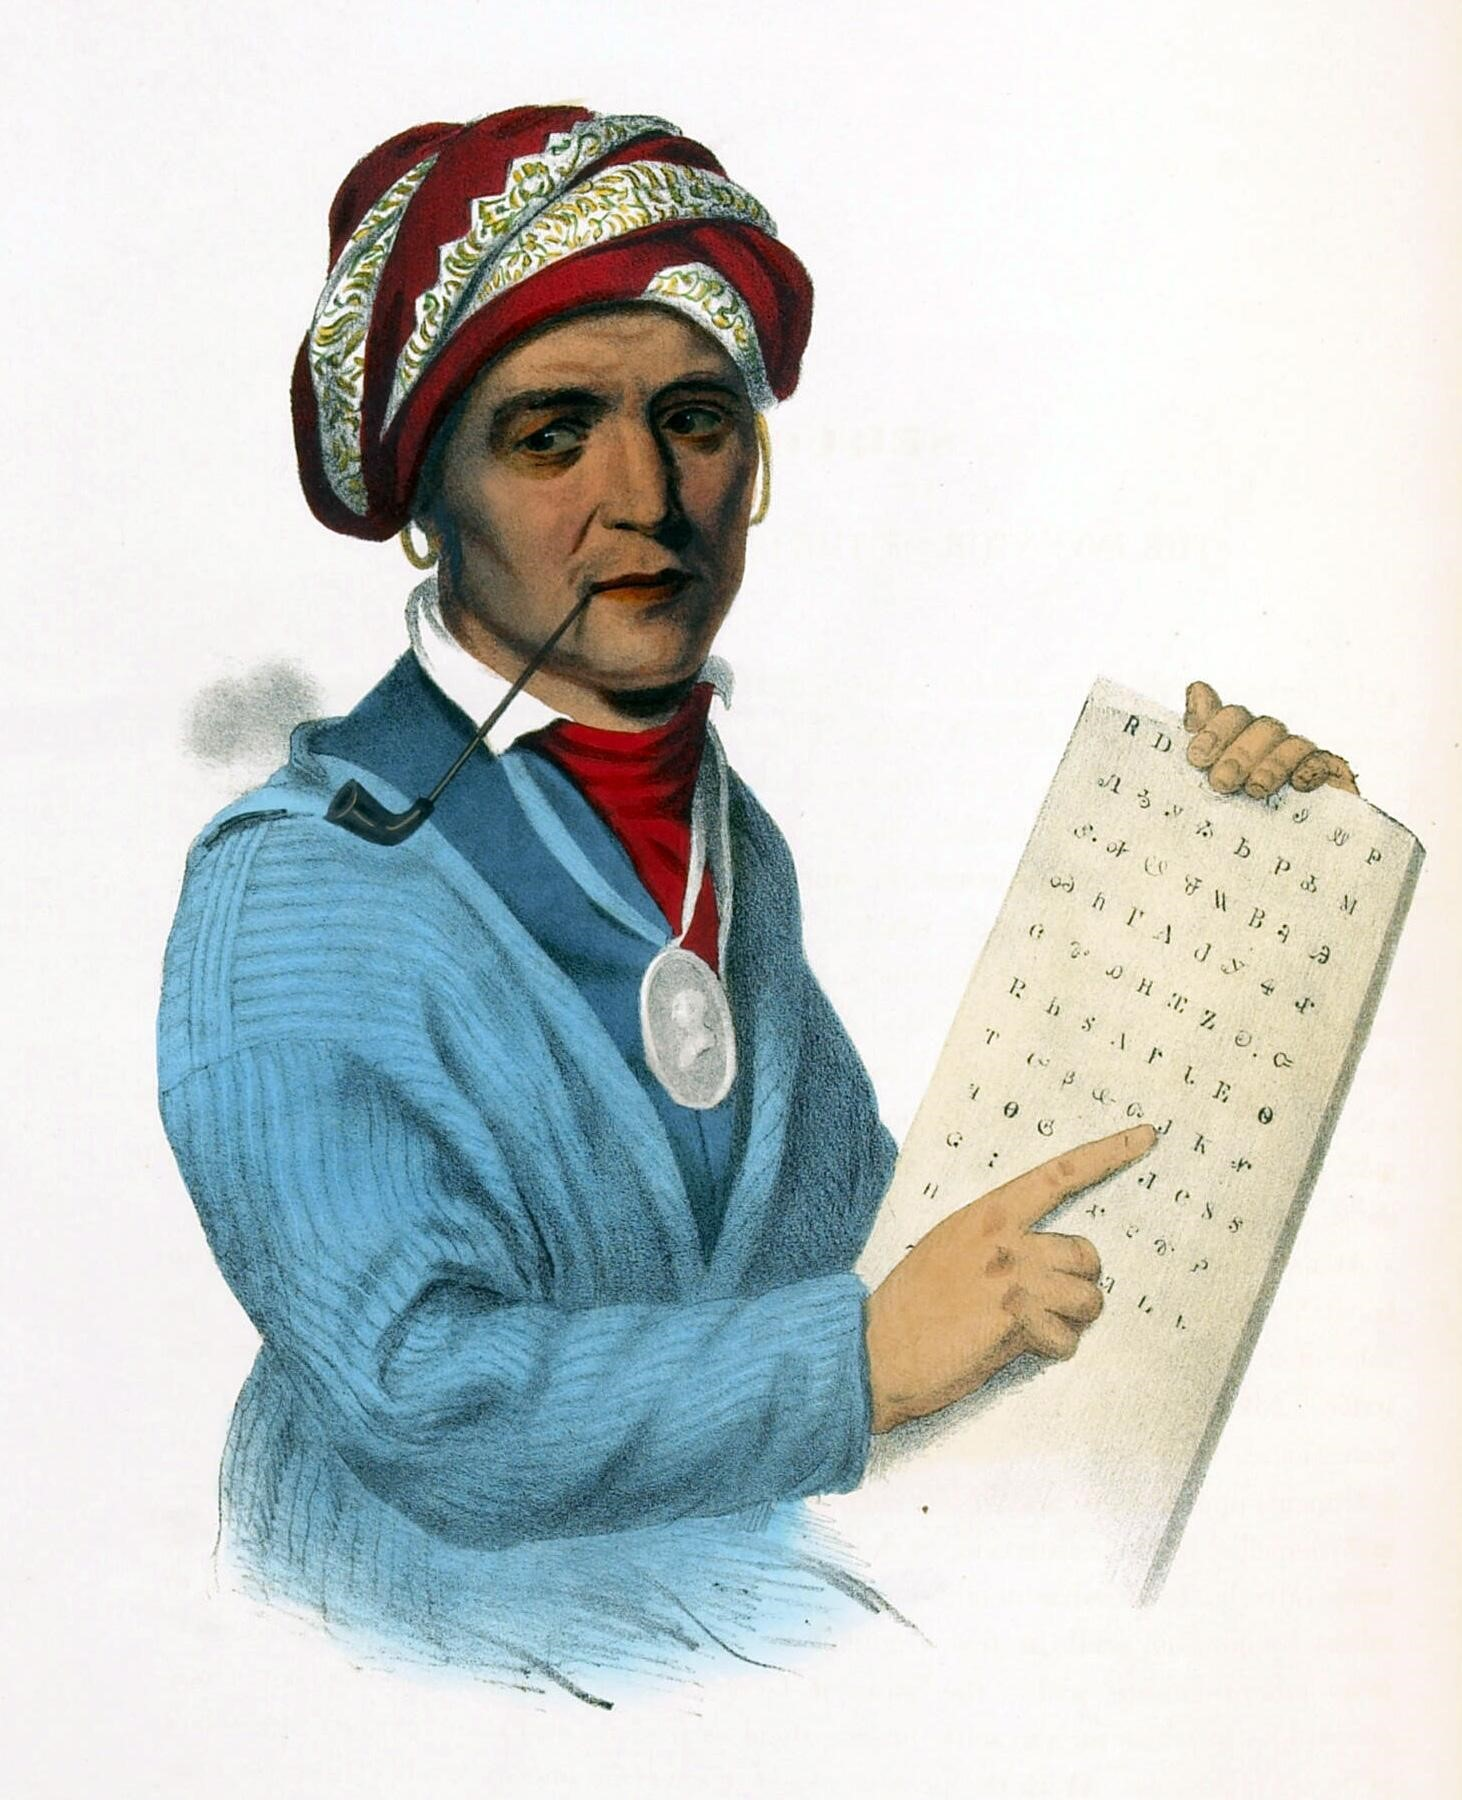 Depiction of Sequoyah with a copy of a syllabary of the Cherokee language, which he developed.